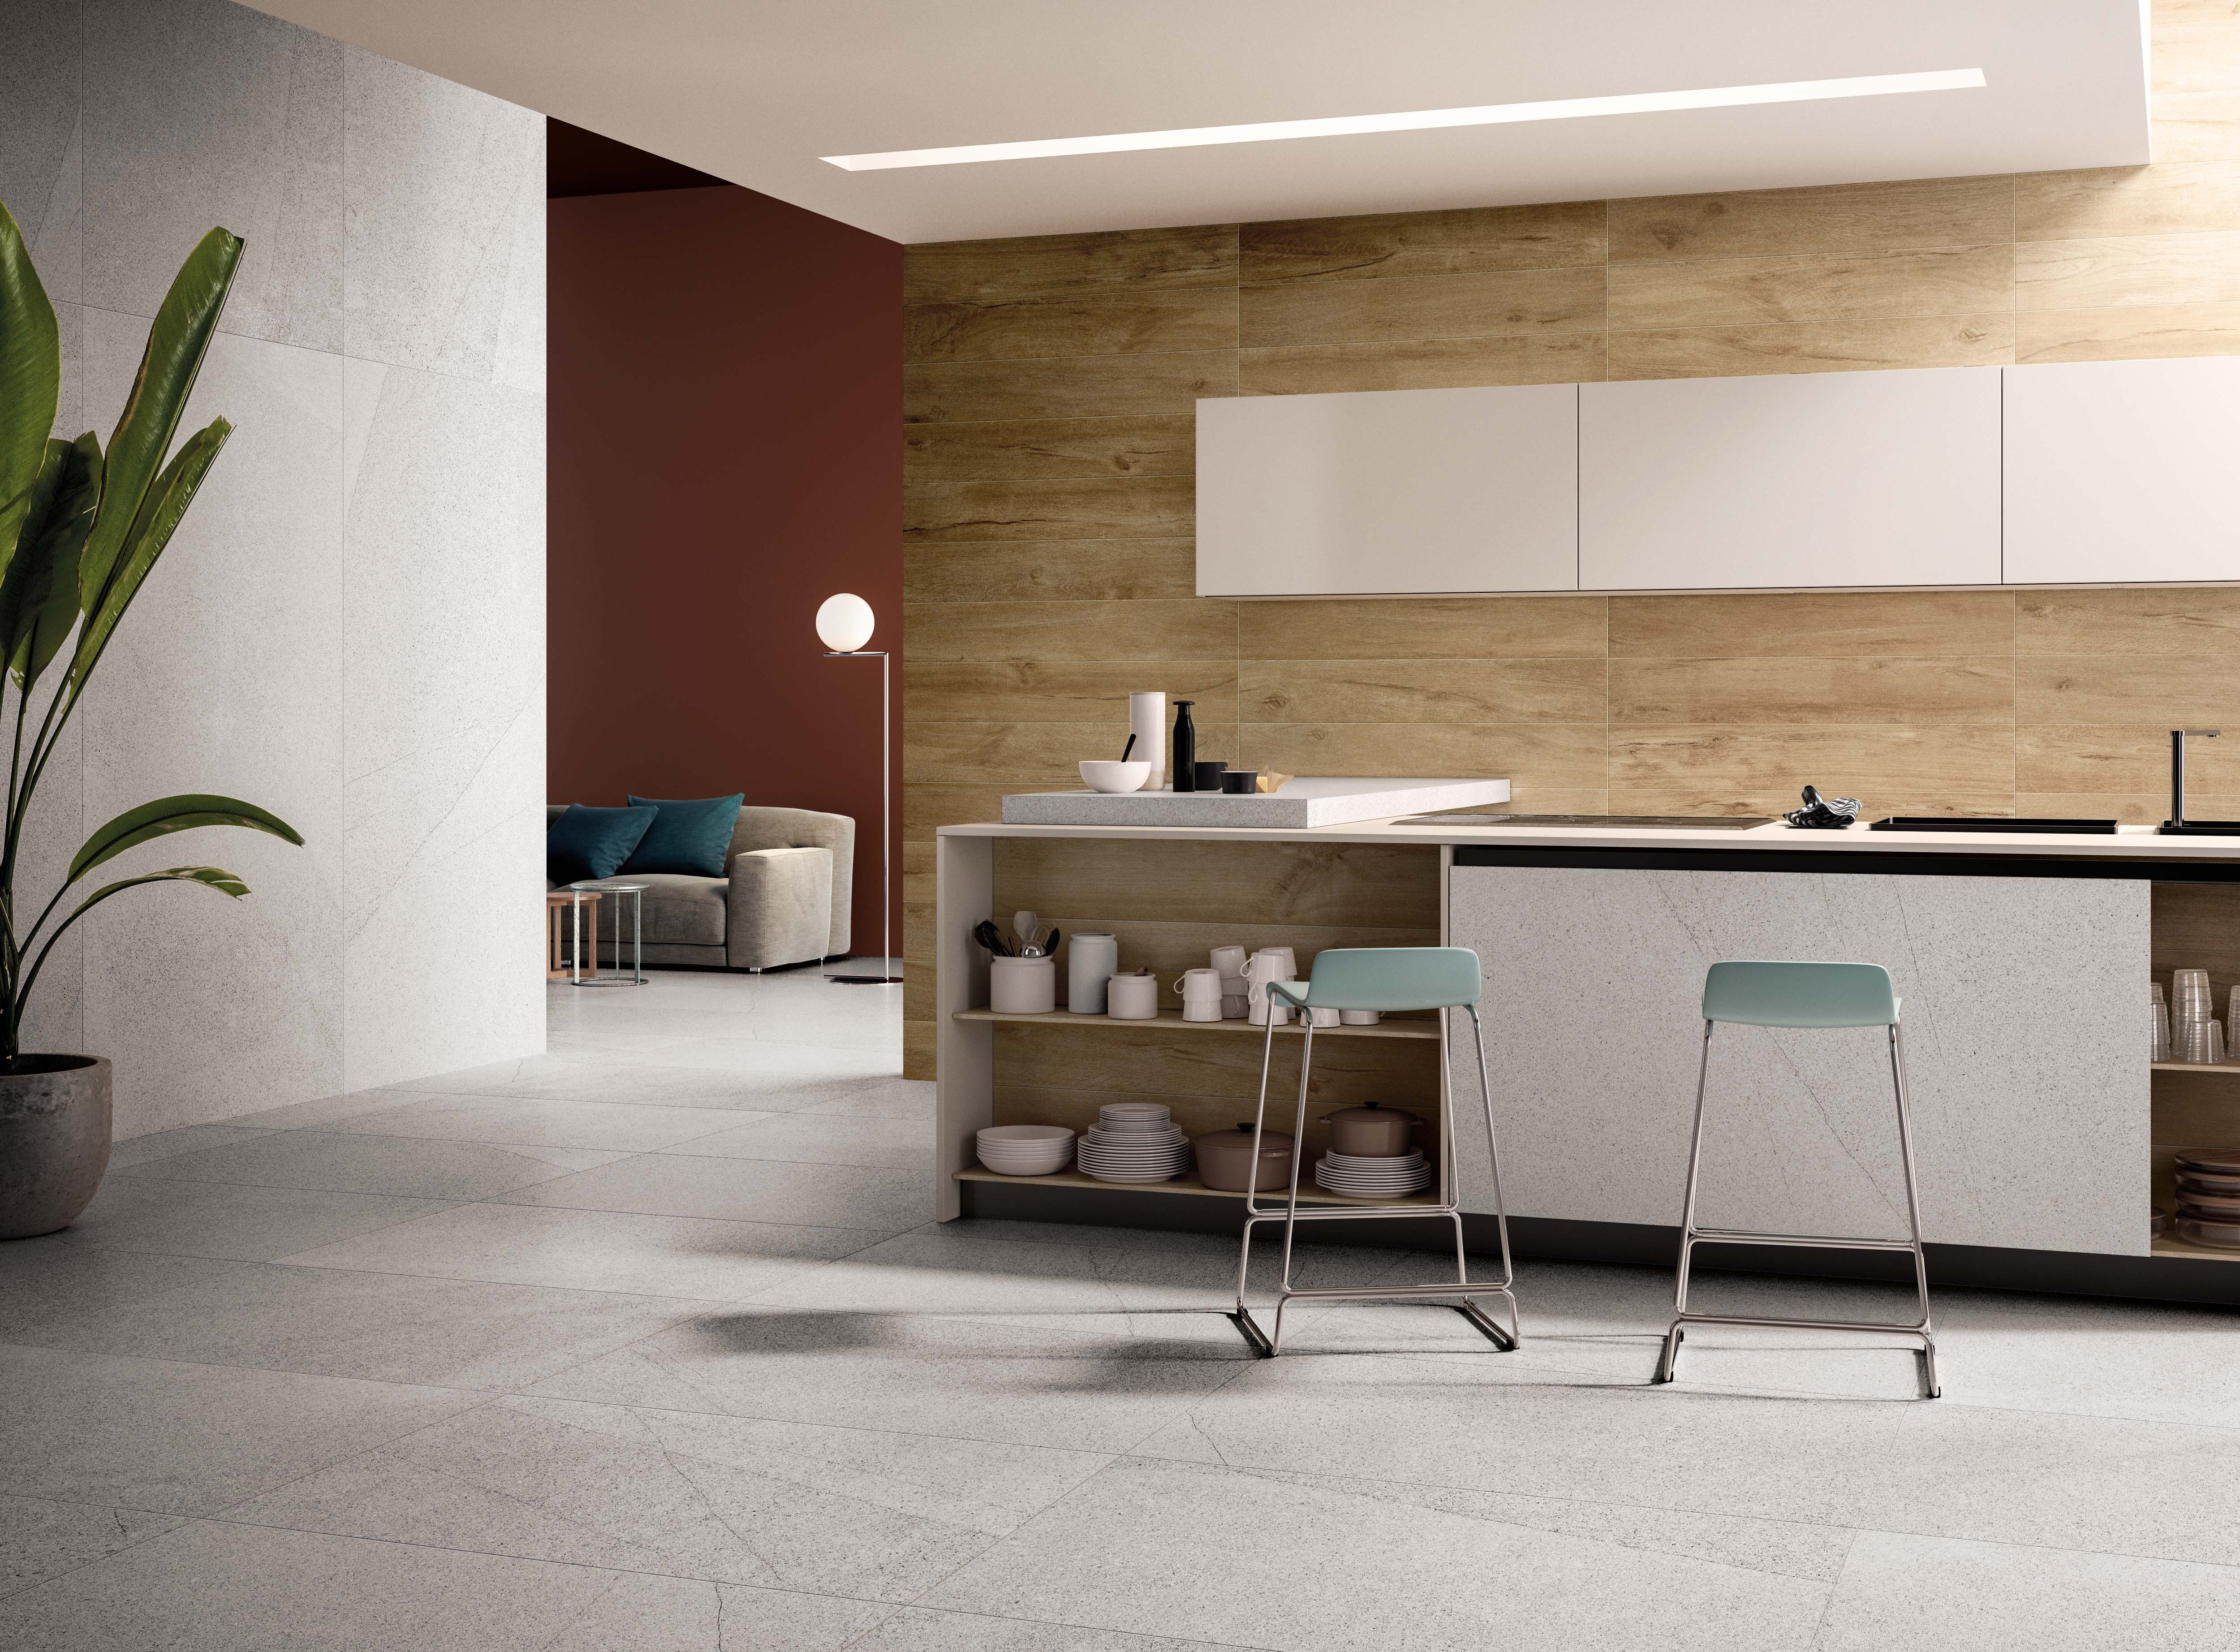 Porcelain Granite Tiles